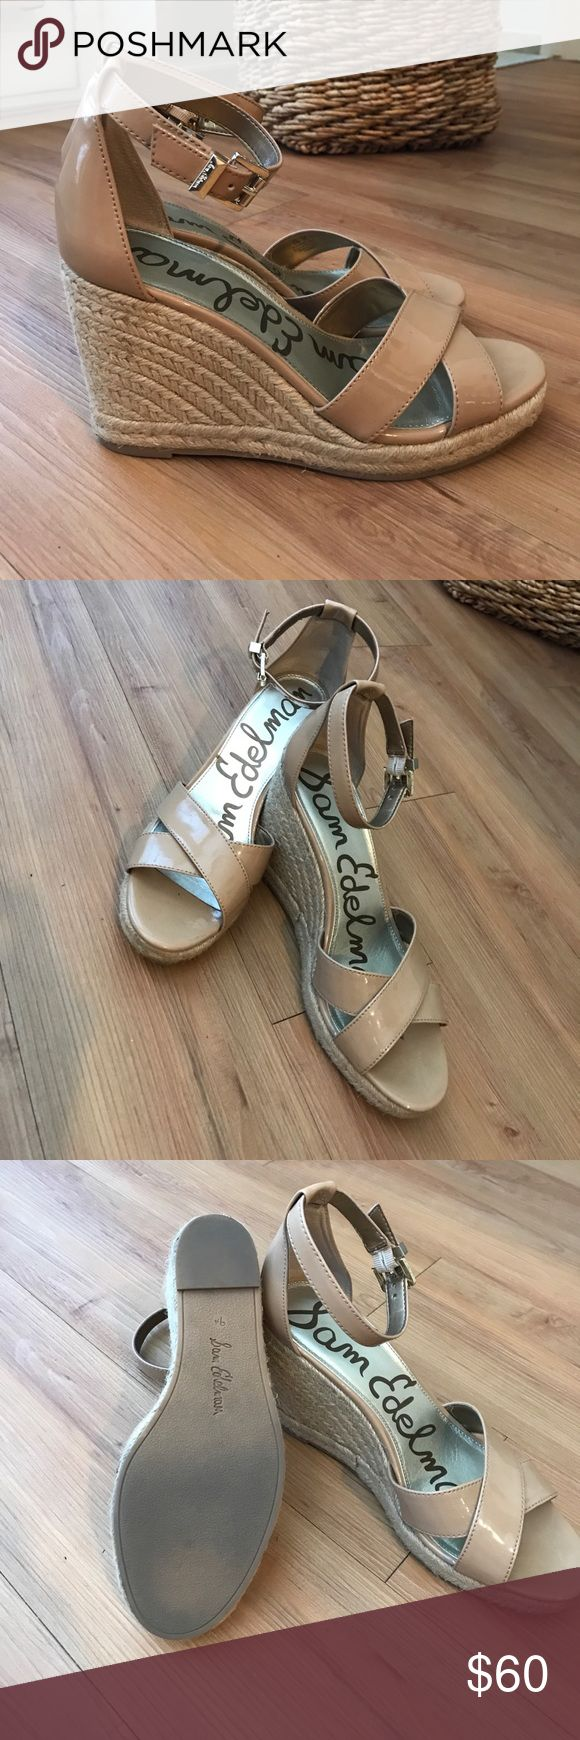 "Sam Edelman Espadrille Wedges Sam Edelman Nude Espadrille Wedges, super comfortable, 4"" Heel - worn only twice. Sam Edelman Shoes Espadrilles"